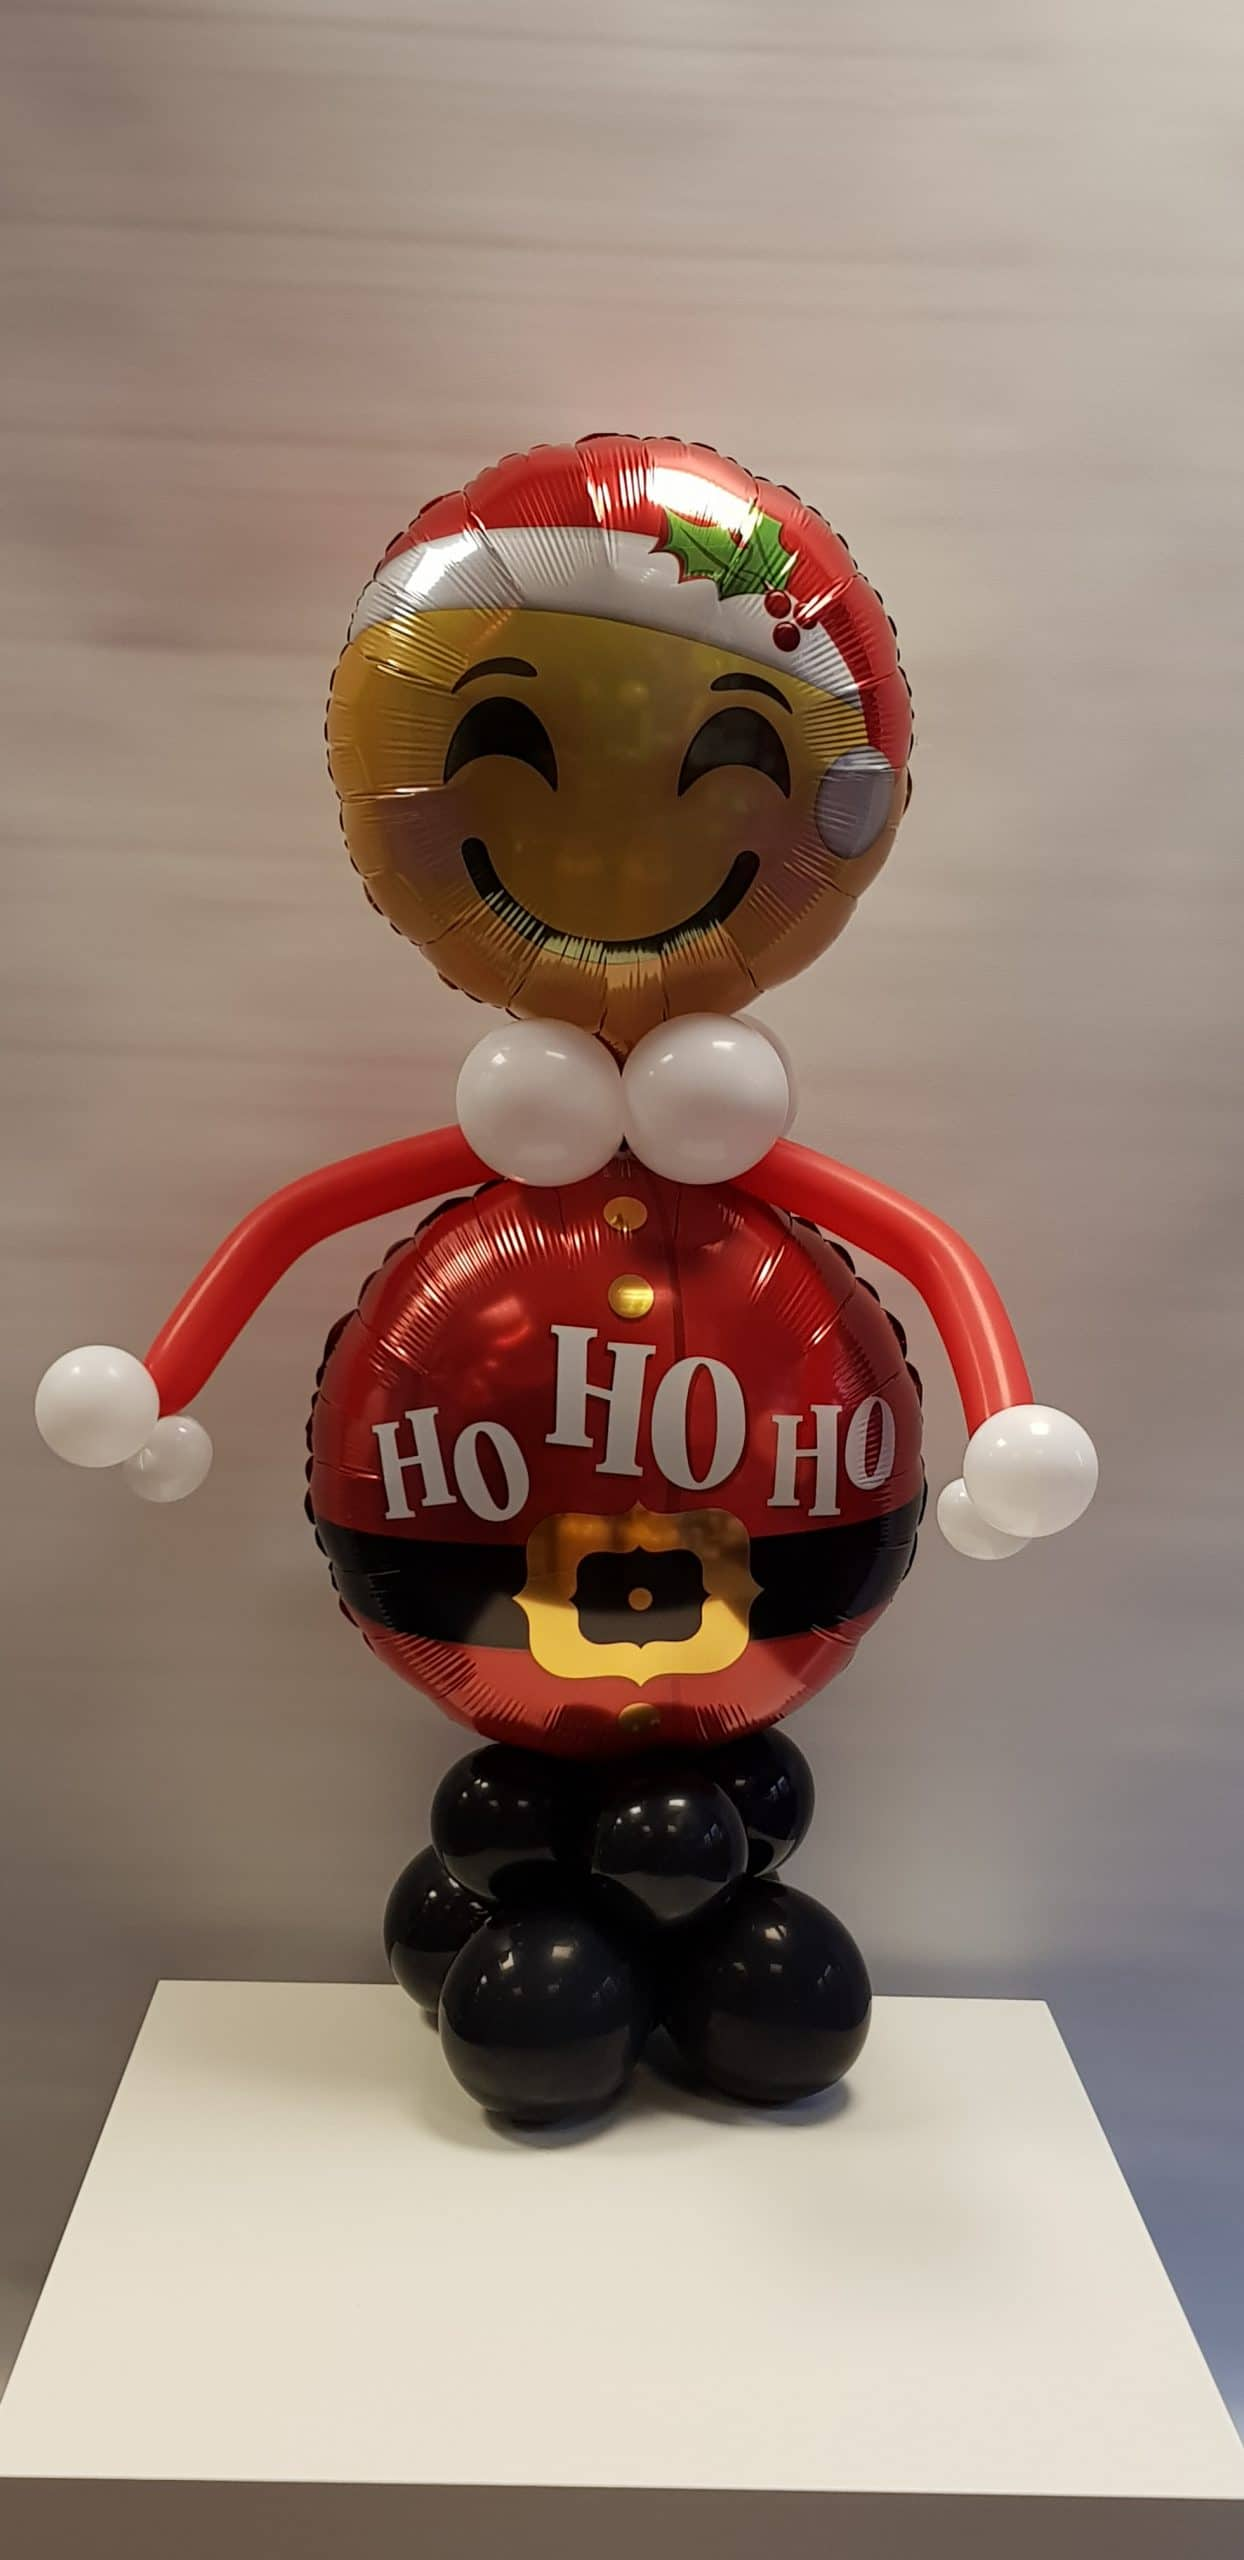 Santa balloon character available from Cardiff Balloons